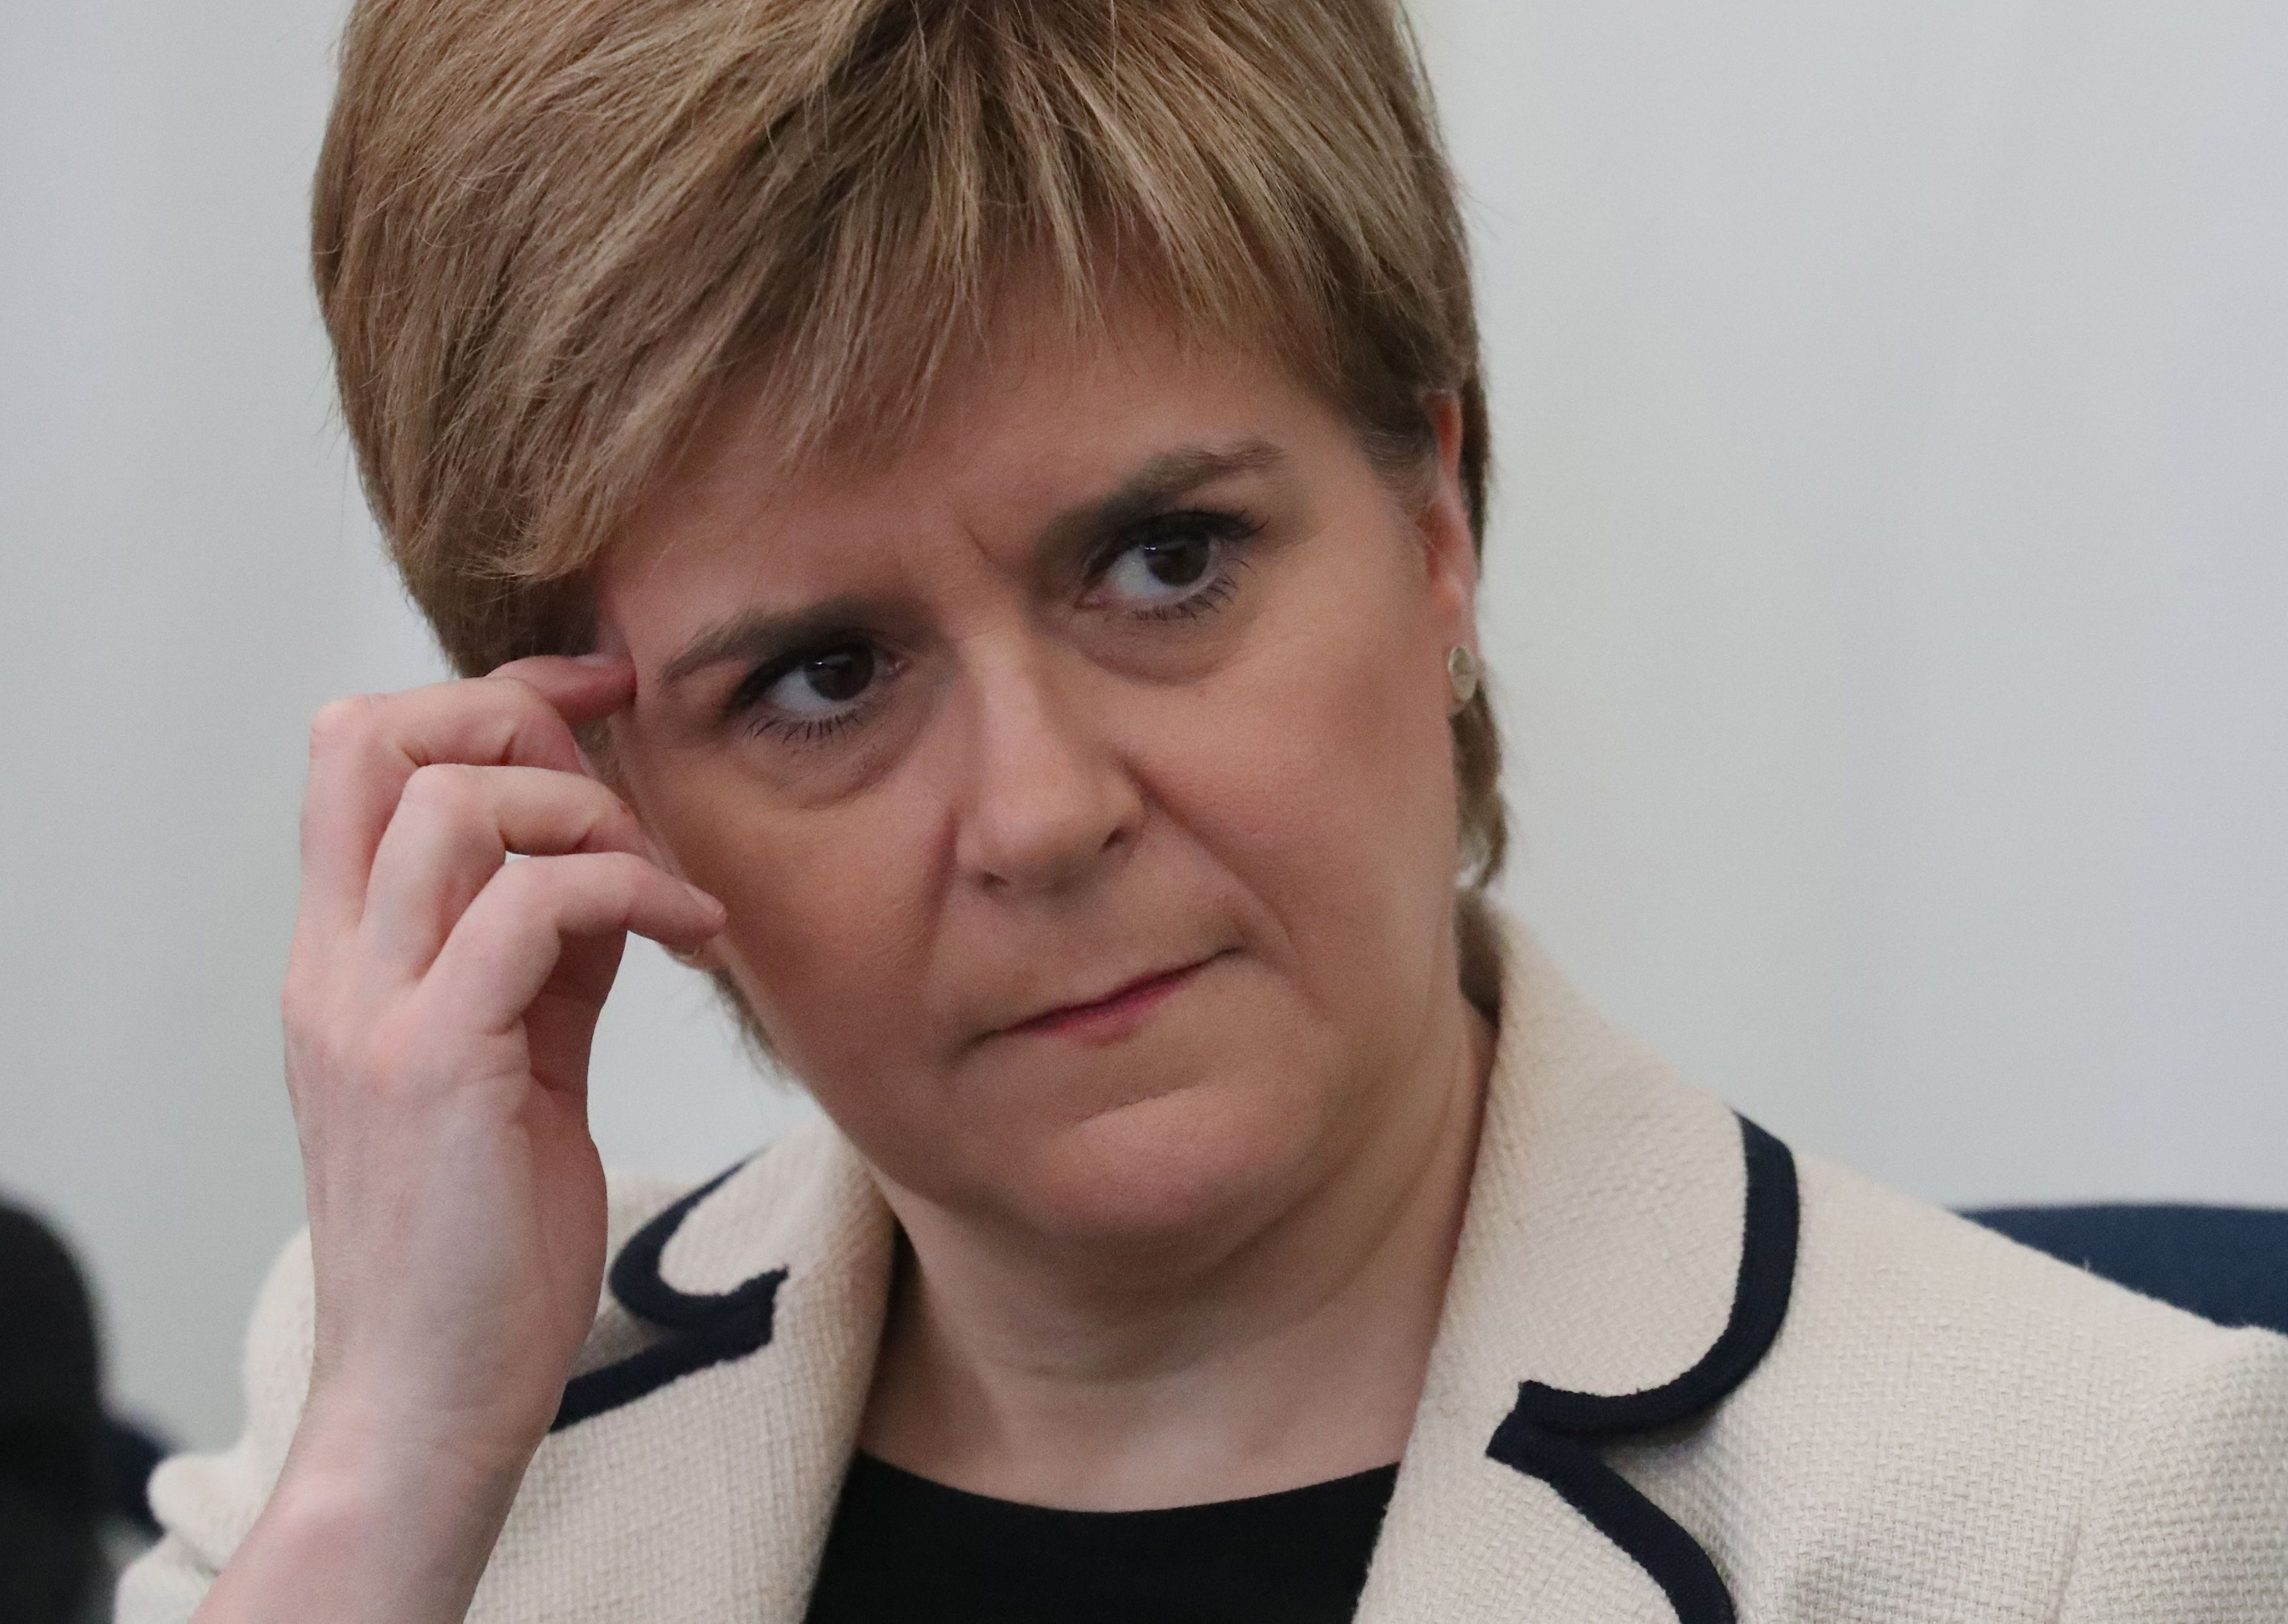 Reports Sturgeon To Suspend Second Referendum 'Entirely